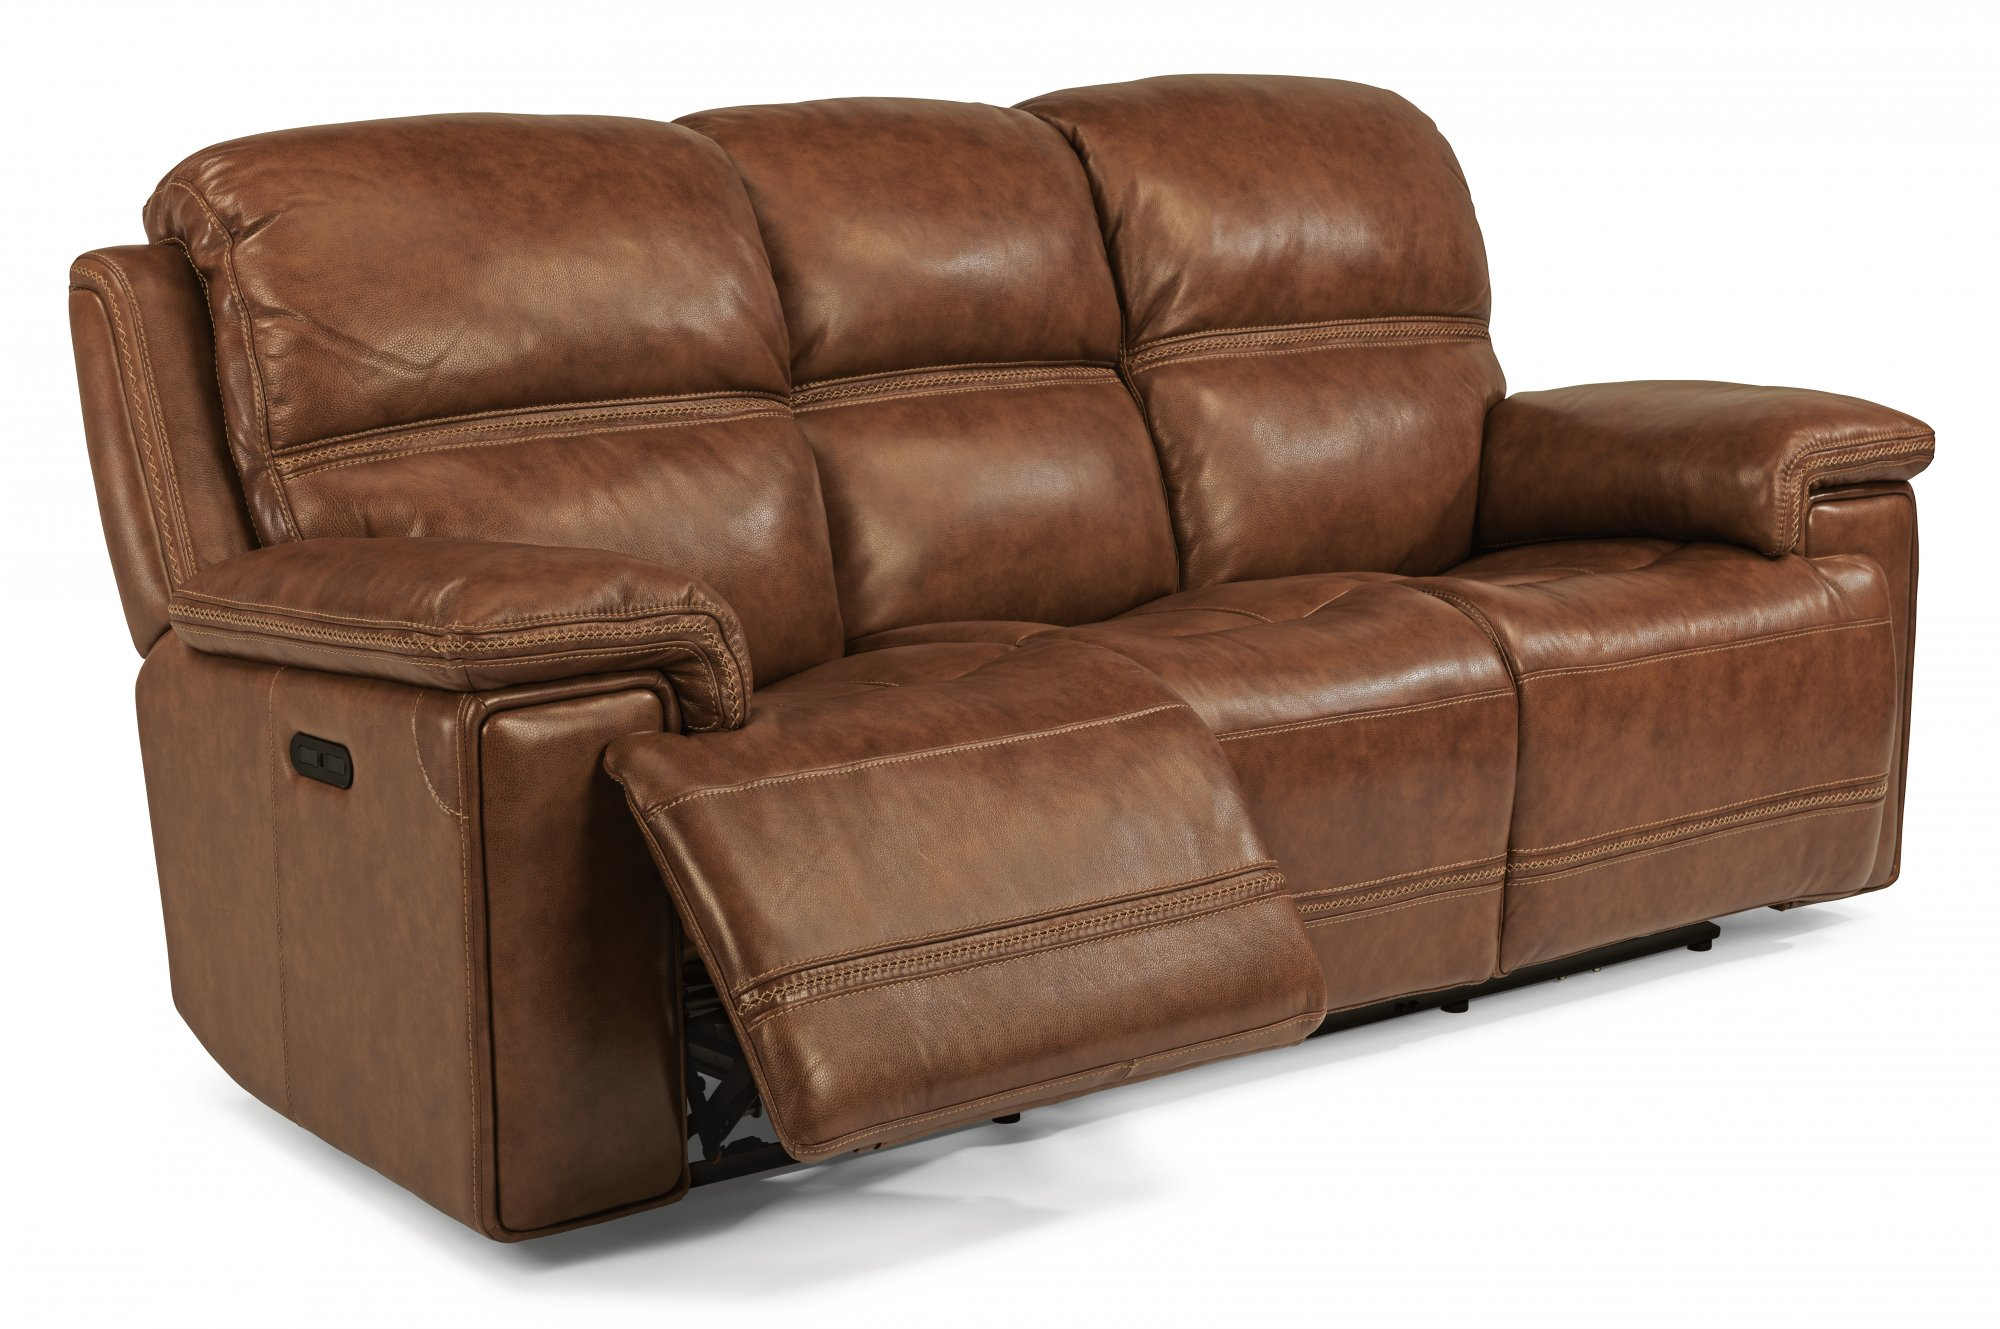 FENWICK 1659 LEATHER POWER RECLINING SOFA WITH POWER HEADRESTS